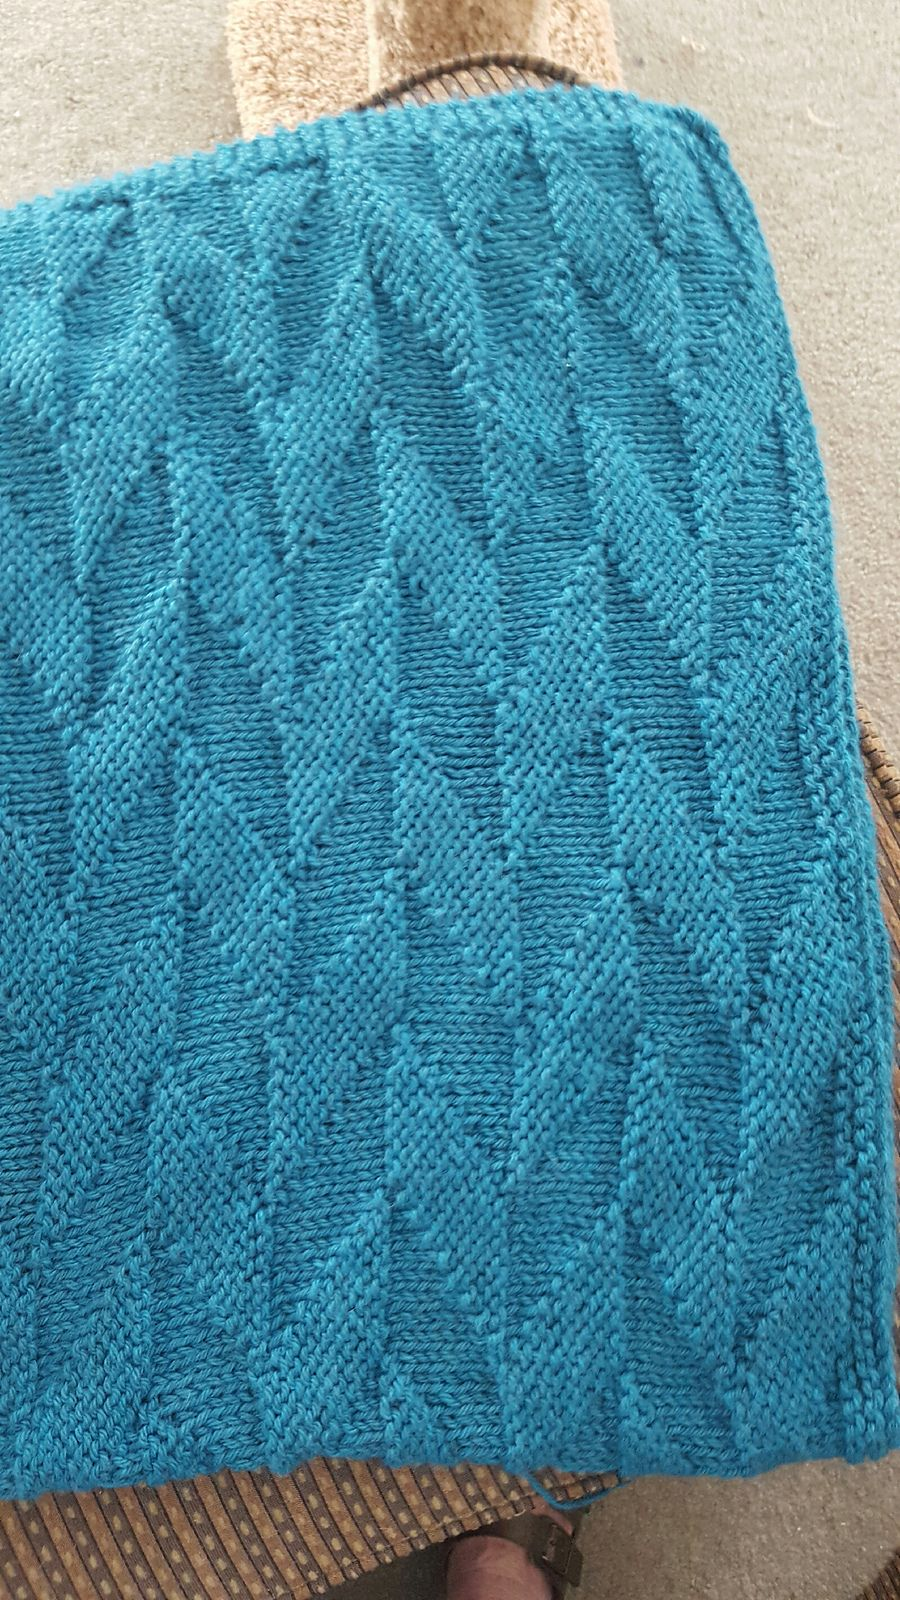 Easy Afghan Knitting Patterns | Afghans, Knit patterns and Yarns